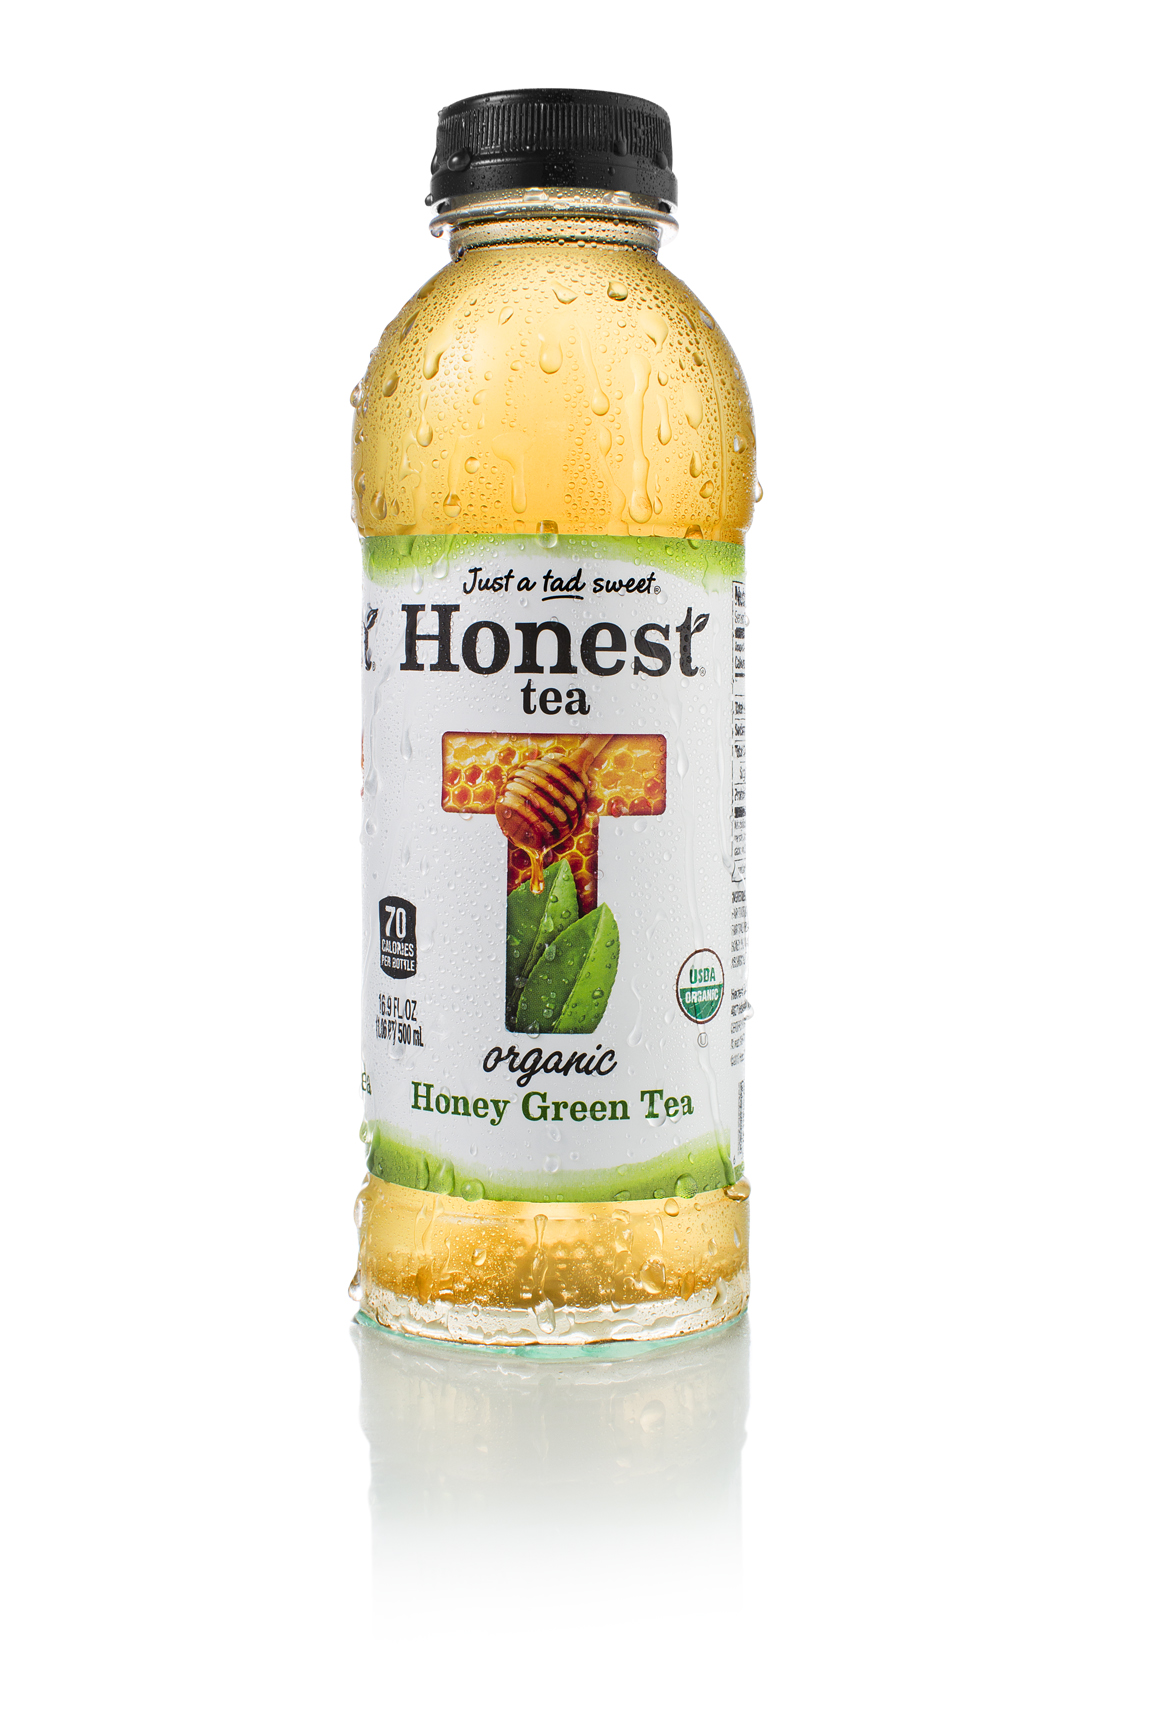 honesttea_34751_edit.jpg